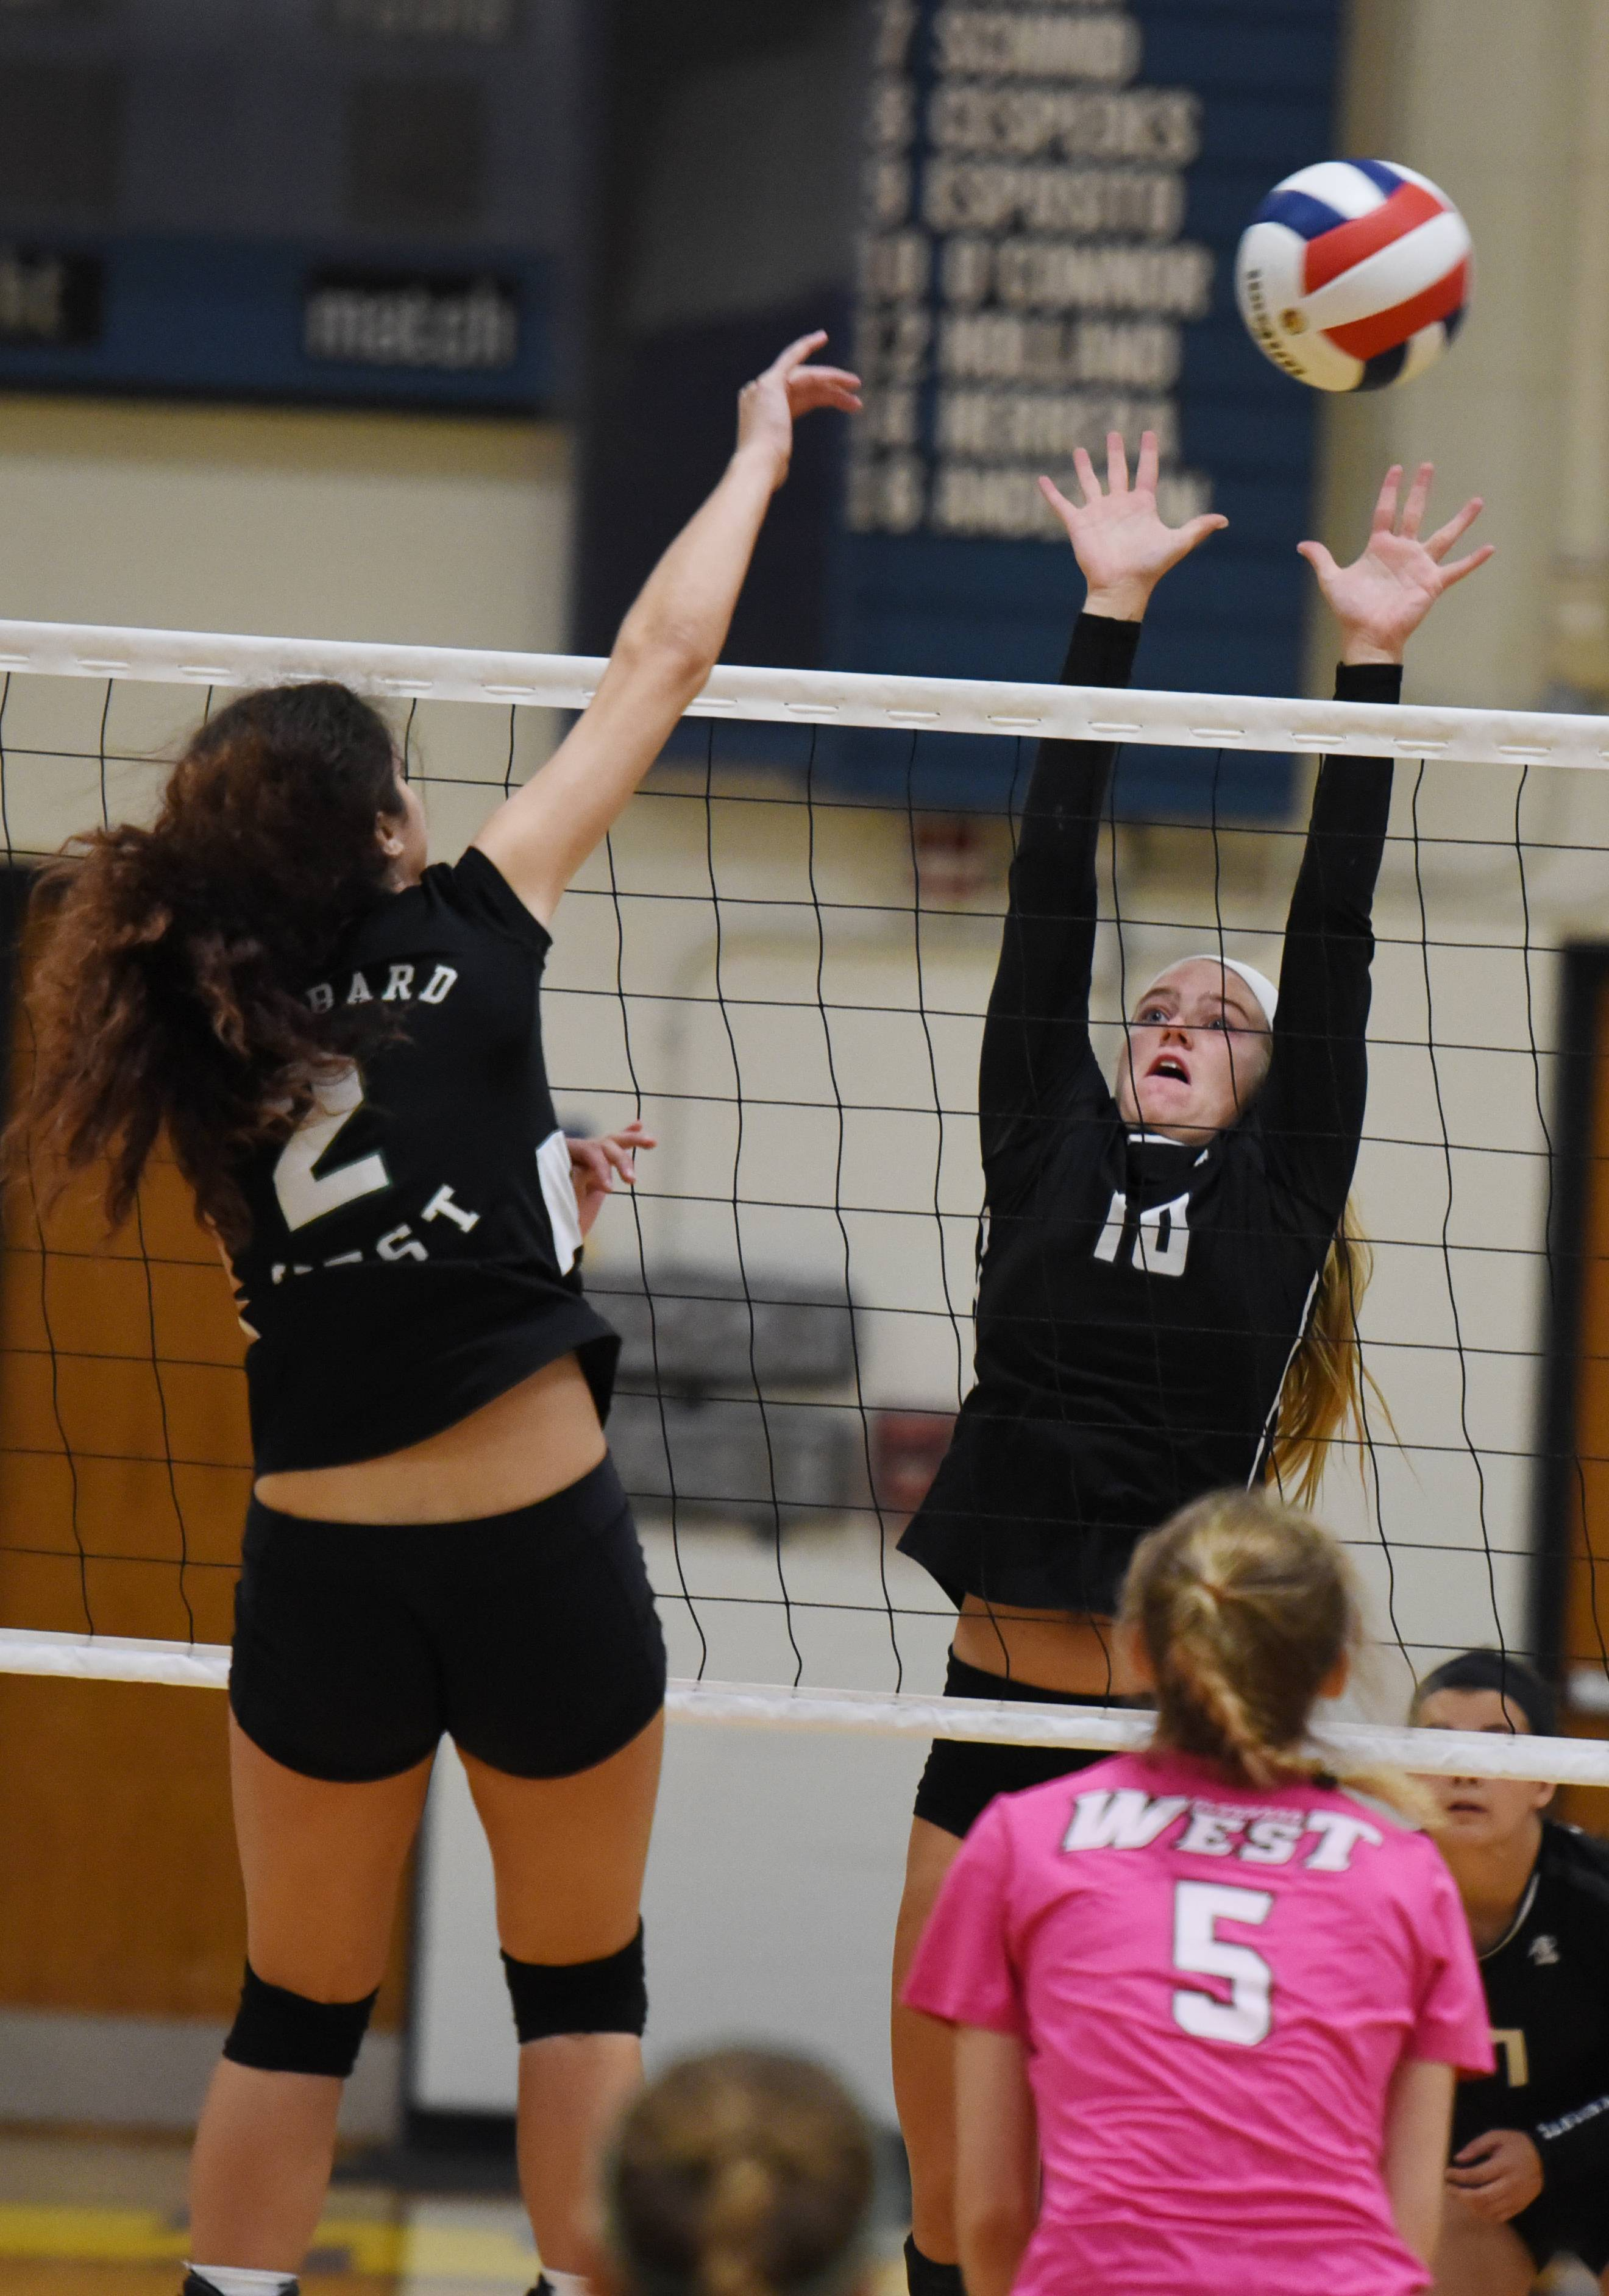 Paul Michna/pmichna@dailyherald.comSophia Alles of Glenbard West,left, blocks a shot from Hannah Nauert of Kaneland during game action at Wheaton North Saturday.